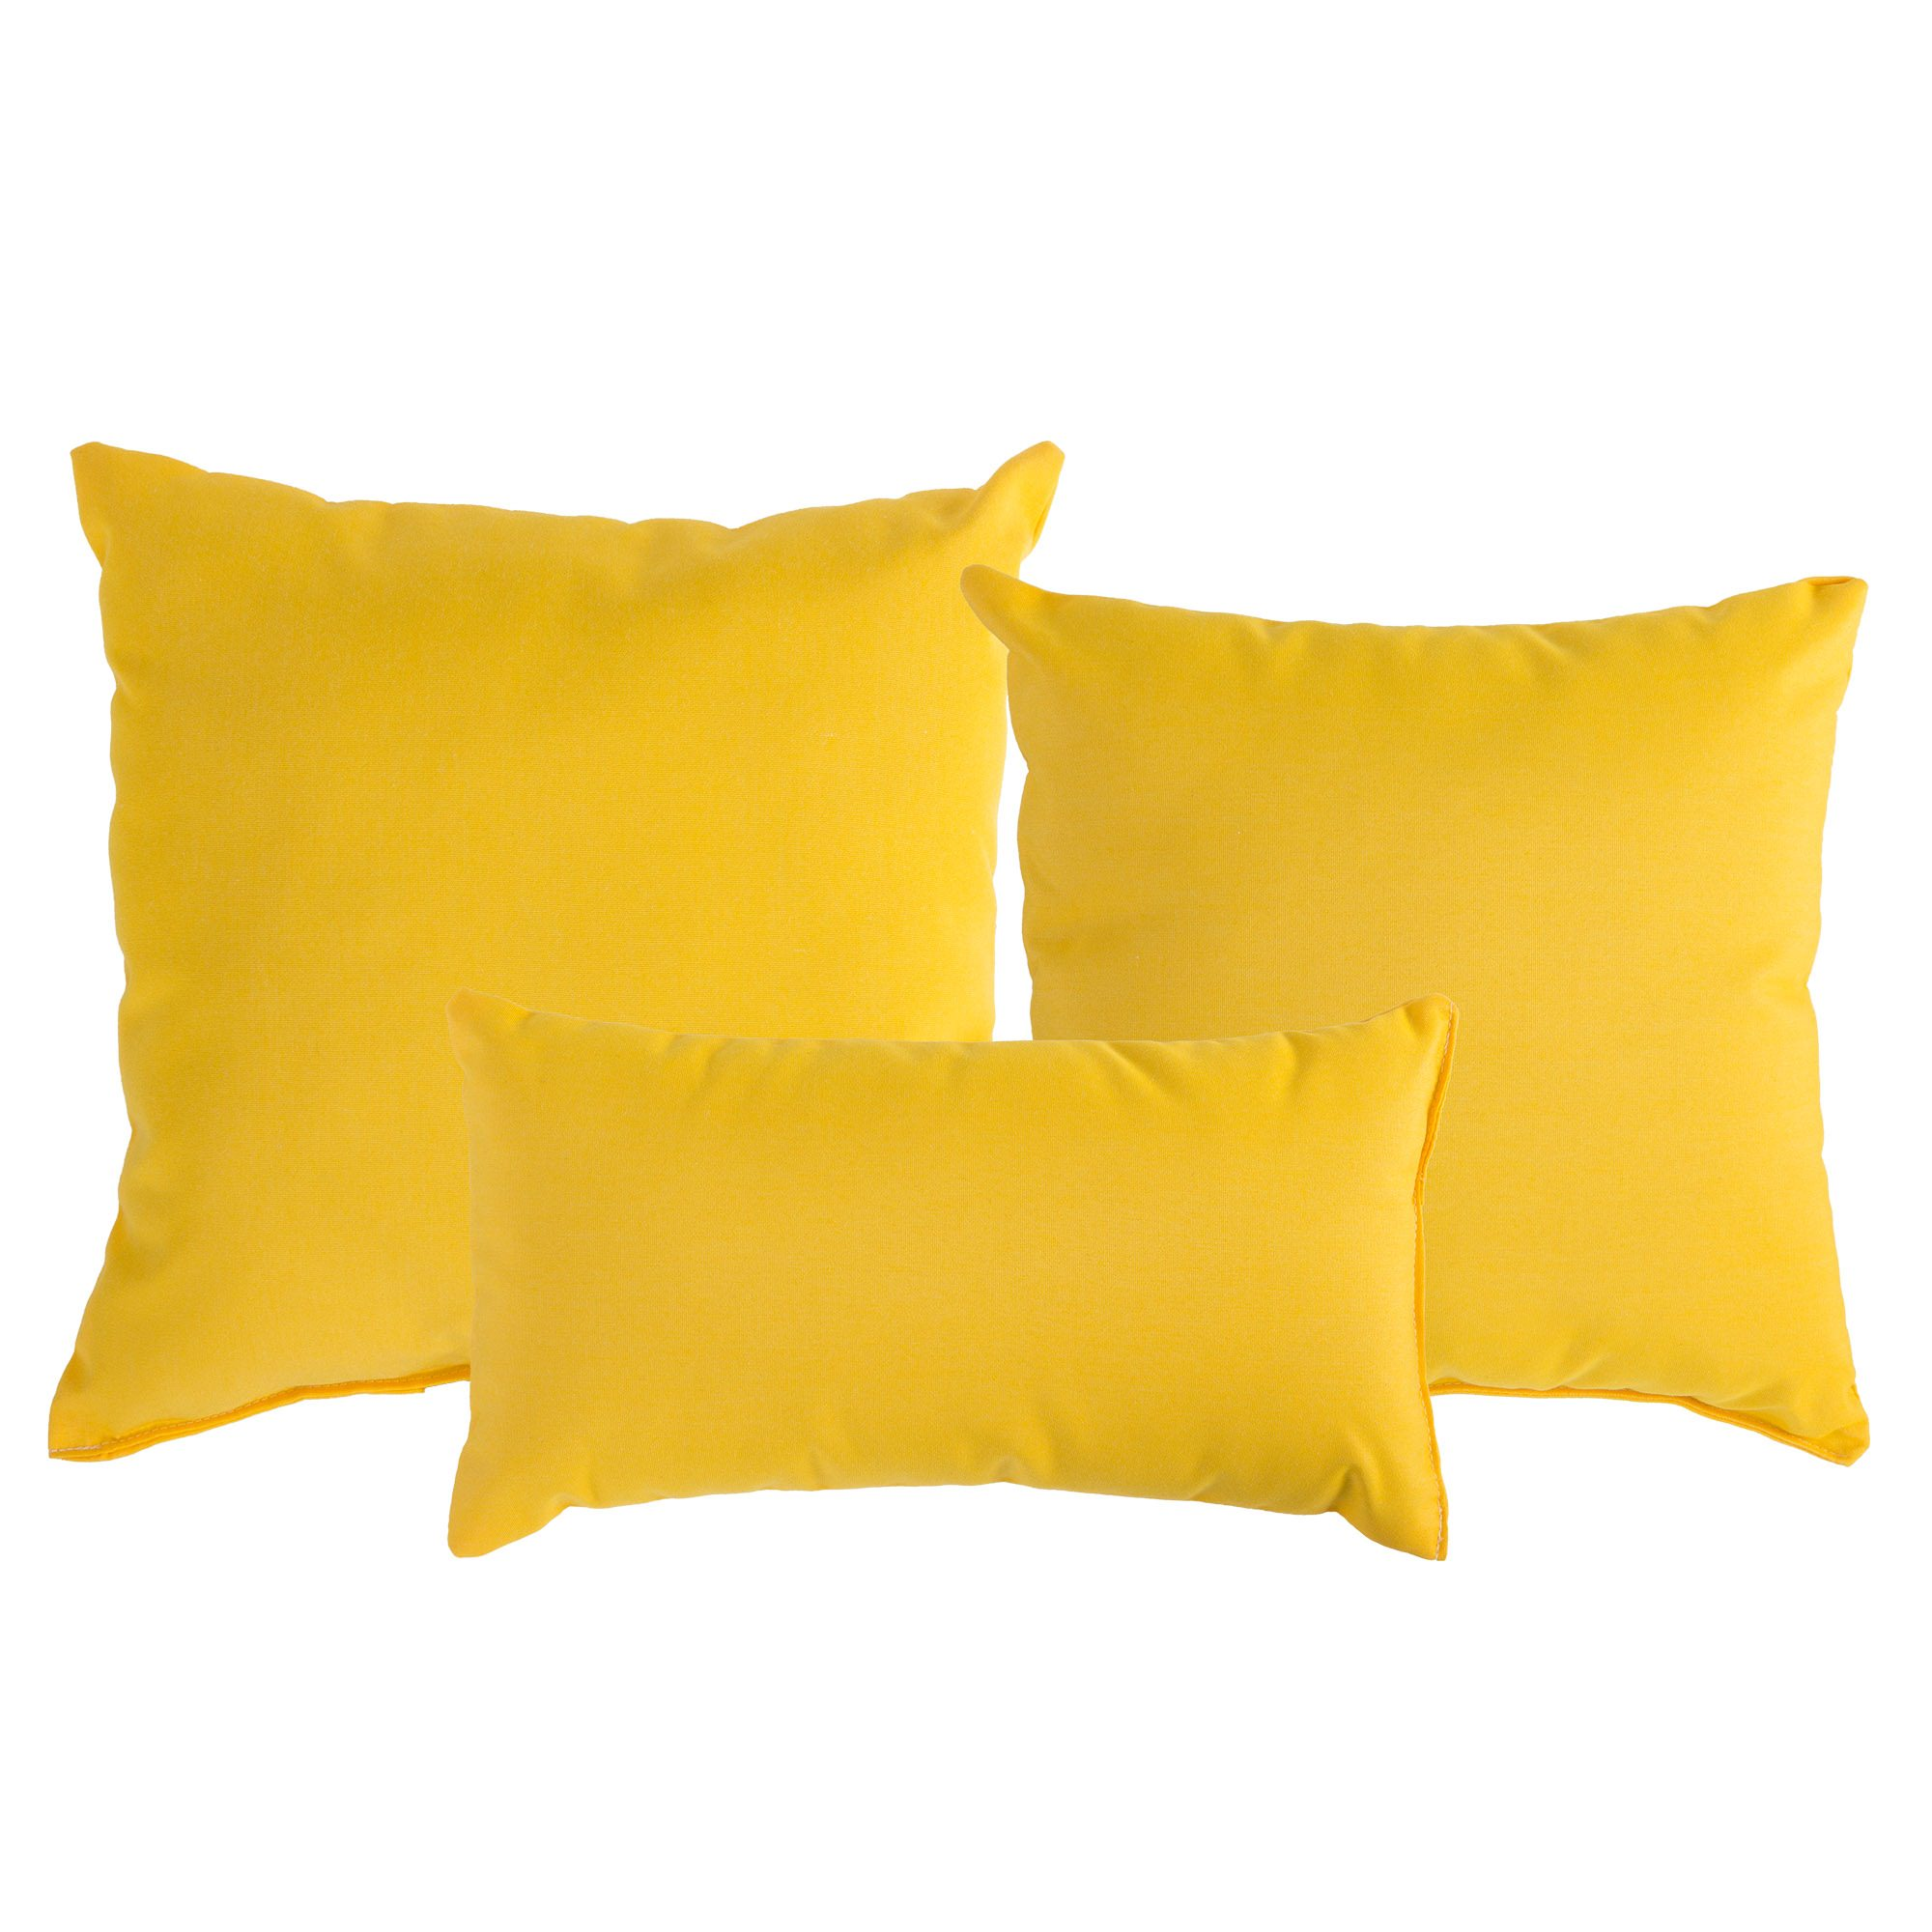 Throw Pillow Yellow : Sunflower Yellow Sunbrella Outdoor Throw Pillow DFOHome